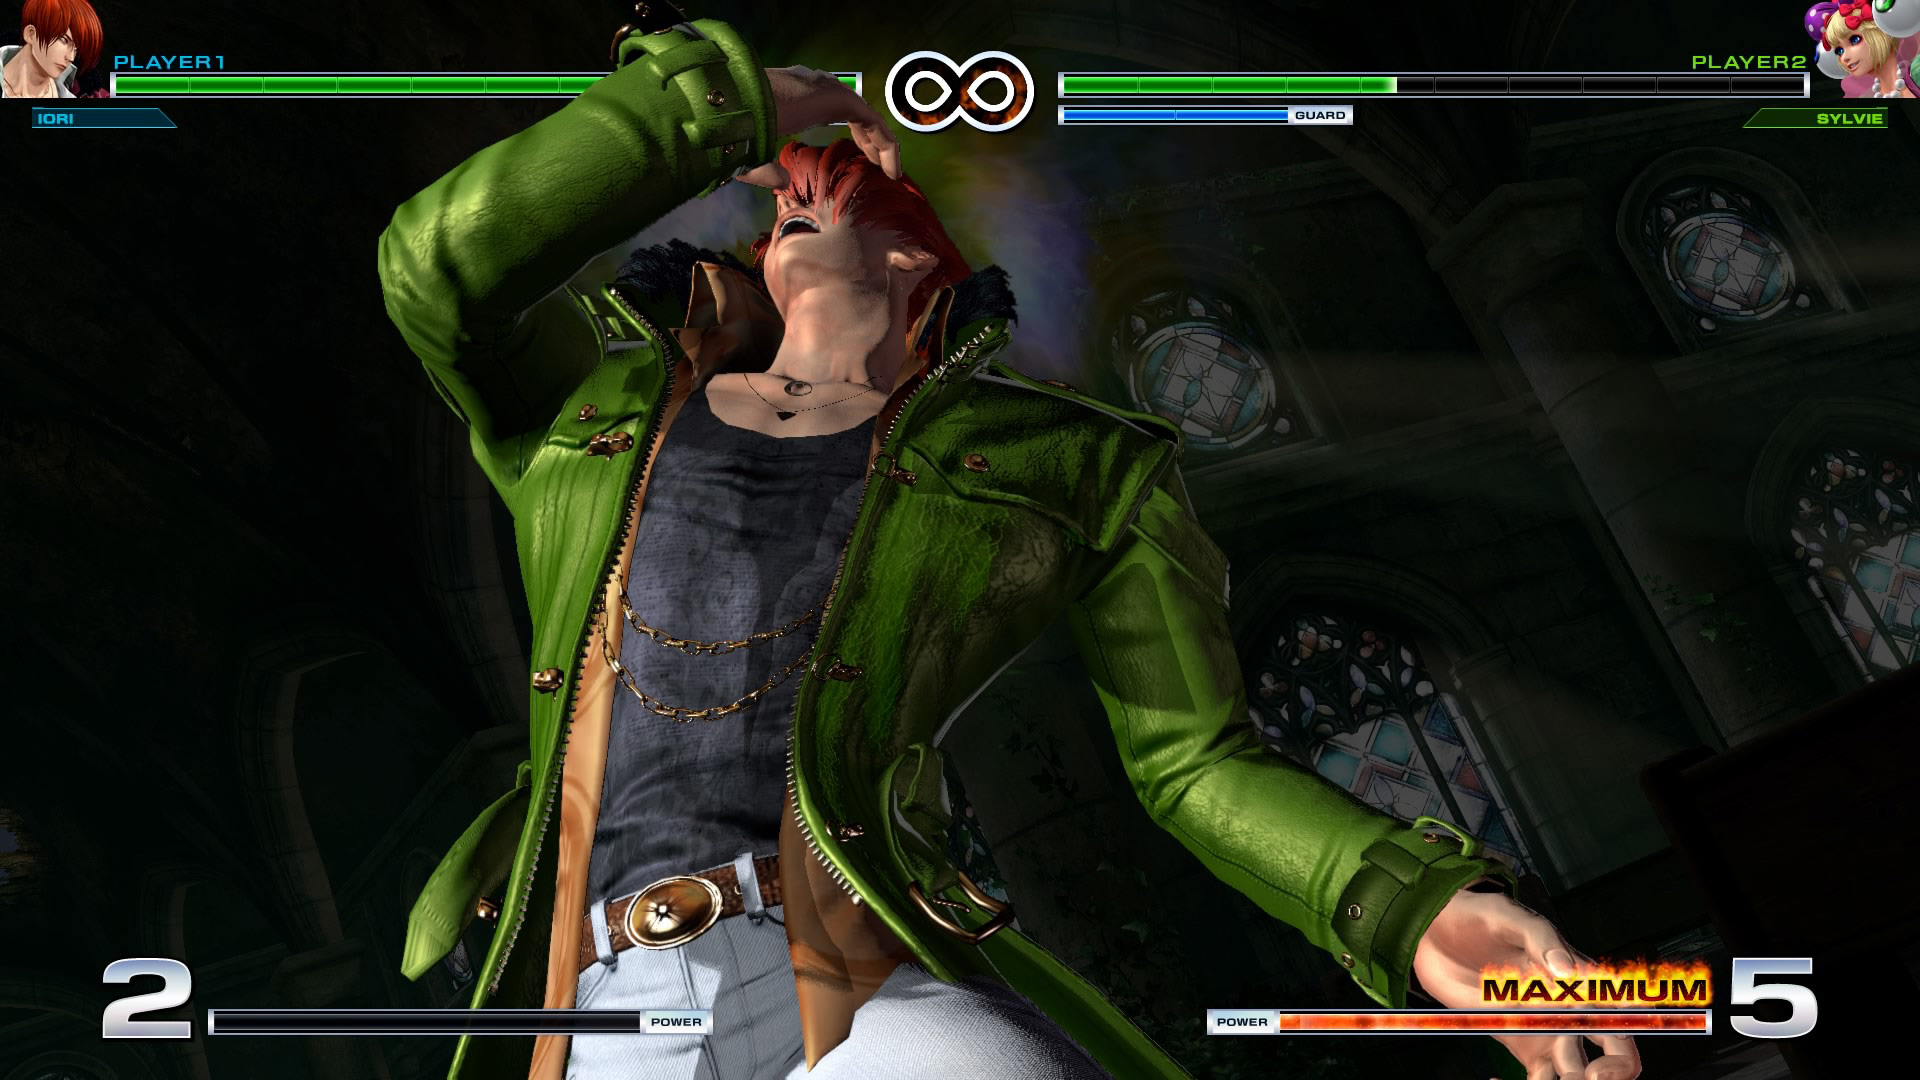 King of Fighters 14 1.10 graphics update 6 out of 60 image gallery